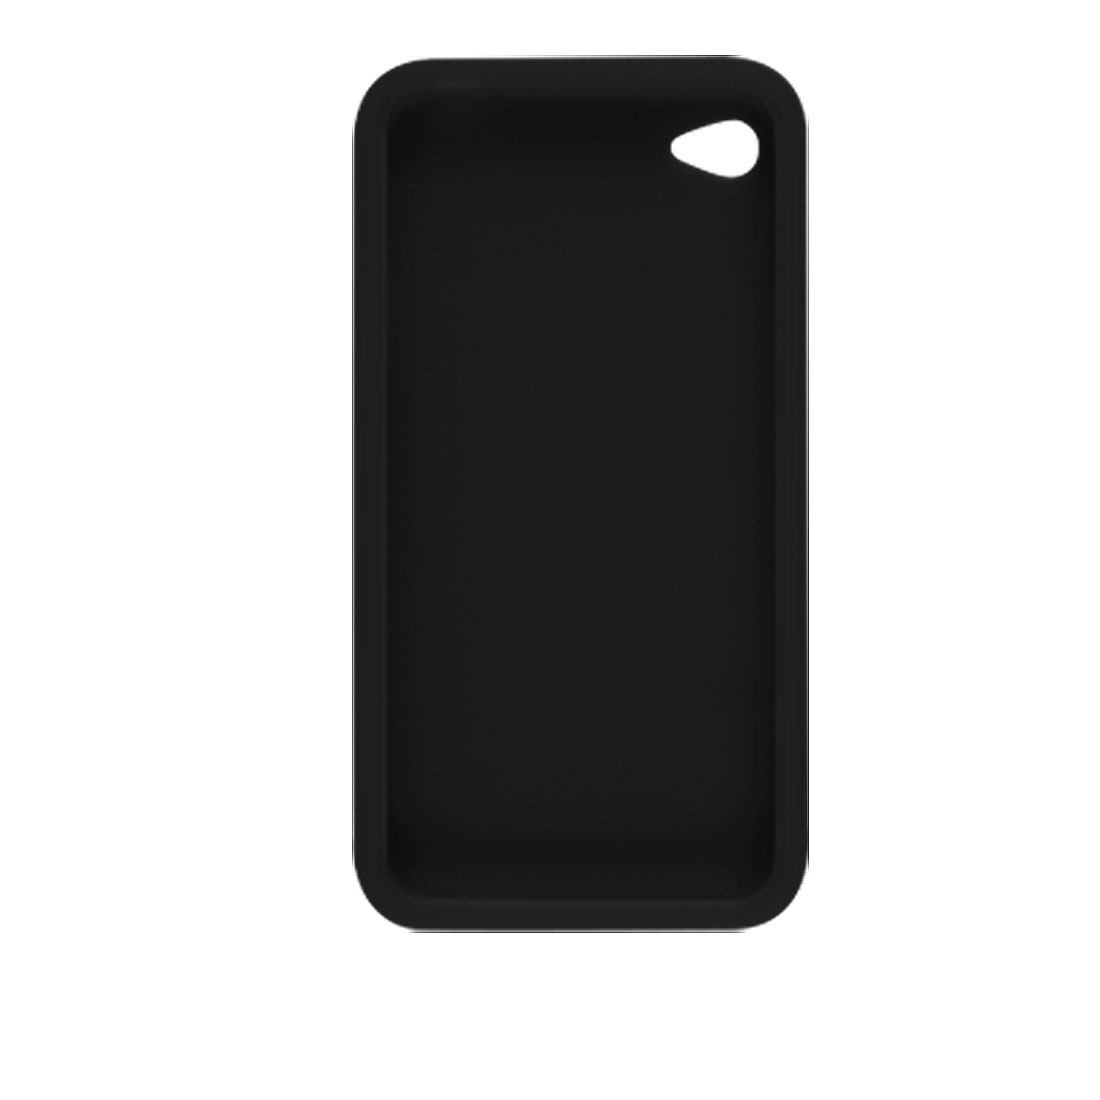 Black Silicone Skin Case Cover Shell Shield for iPhone 4 4G